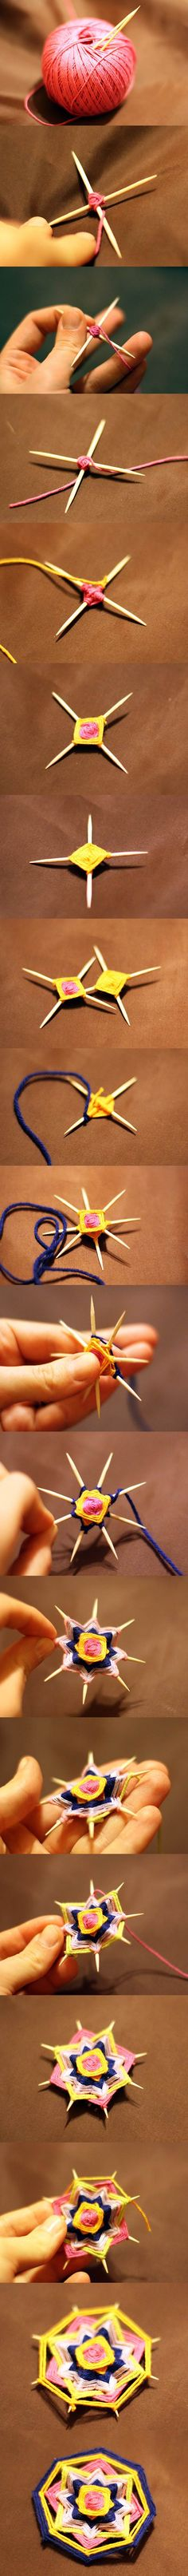 DIY Weave a Mandala Brooch with Toothpicks | iCreativeIdeas.com Follow Us on Facebook --> https://www.facebook.com/icreativeideas